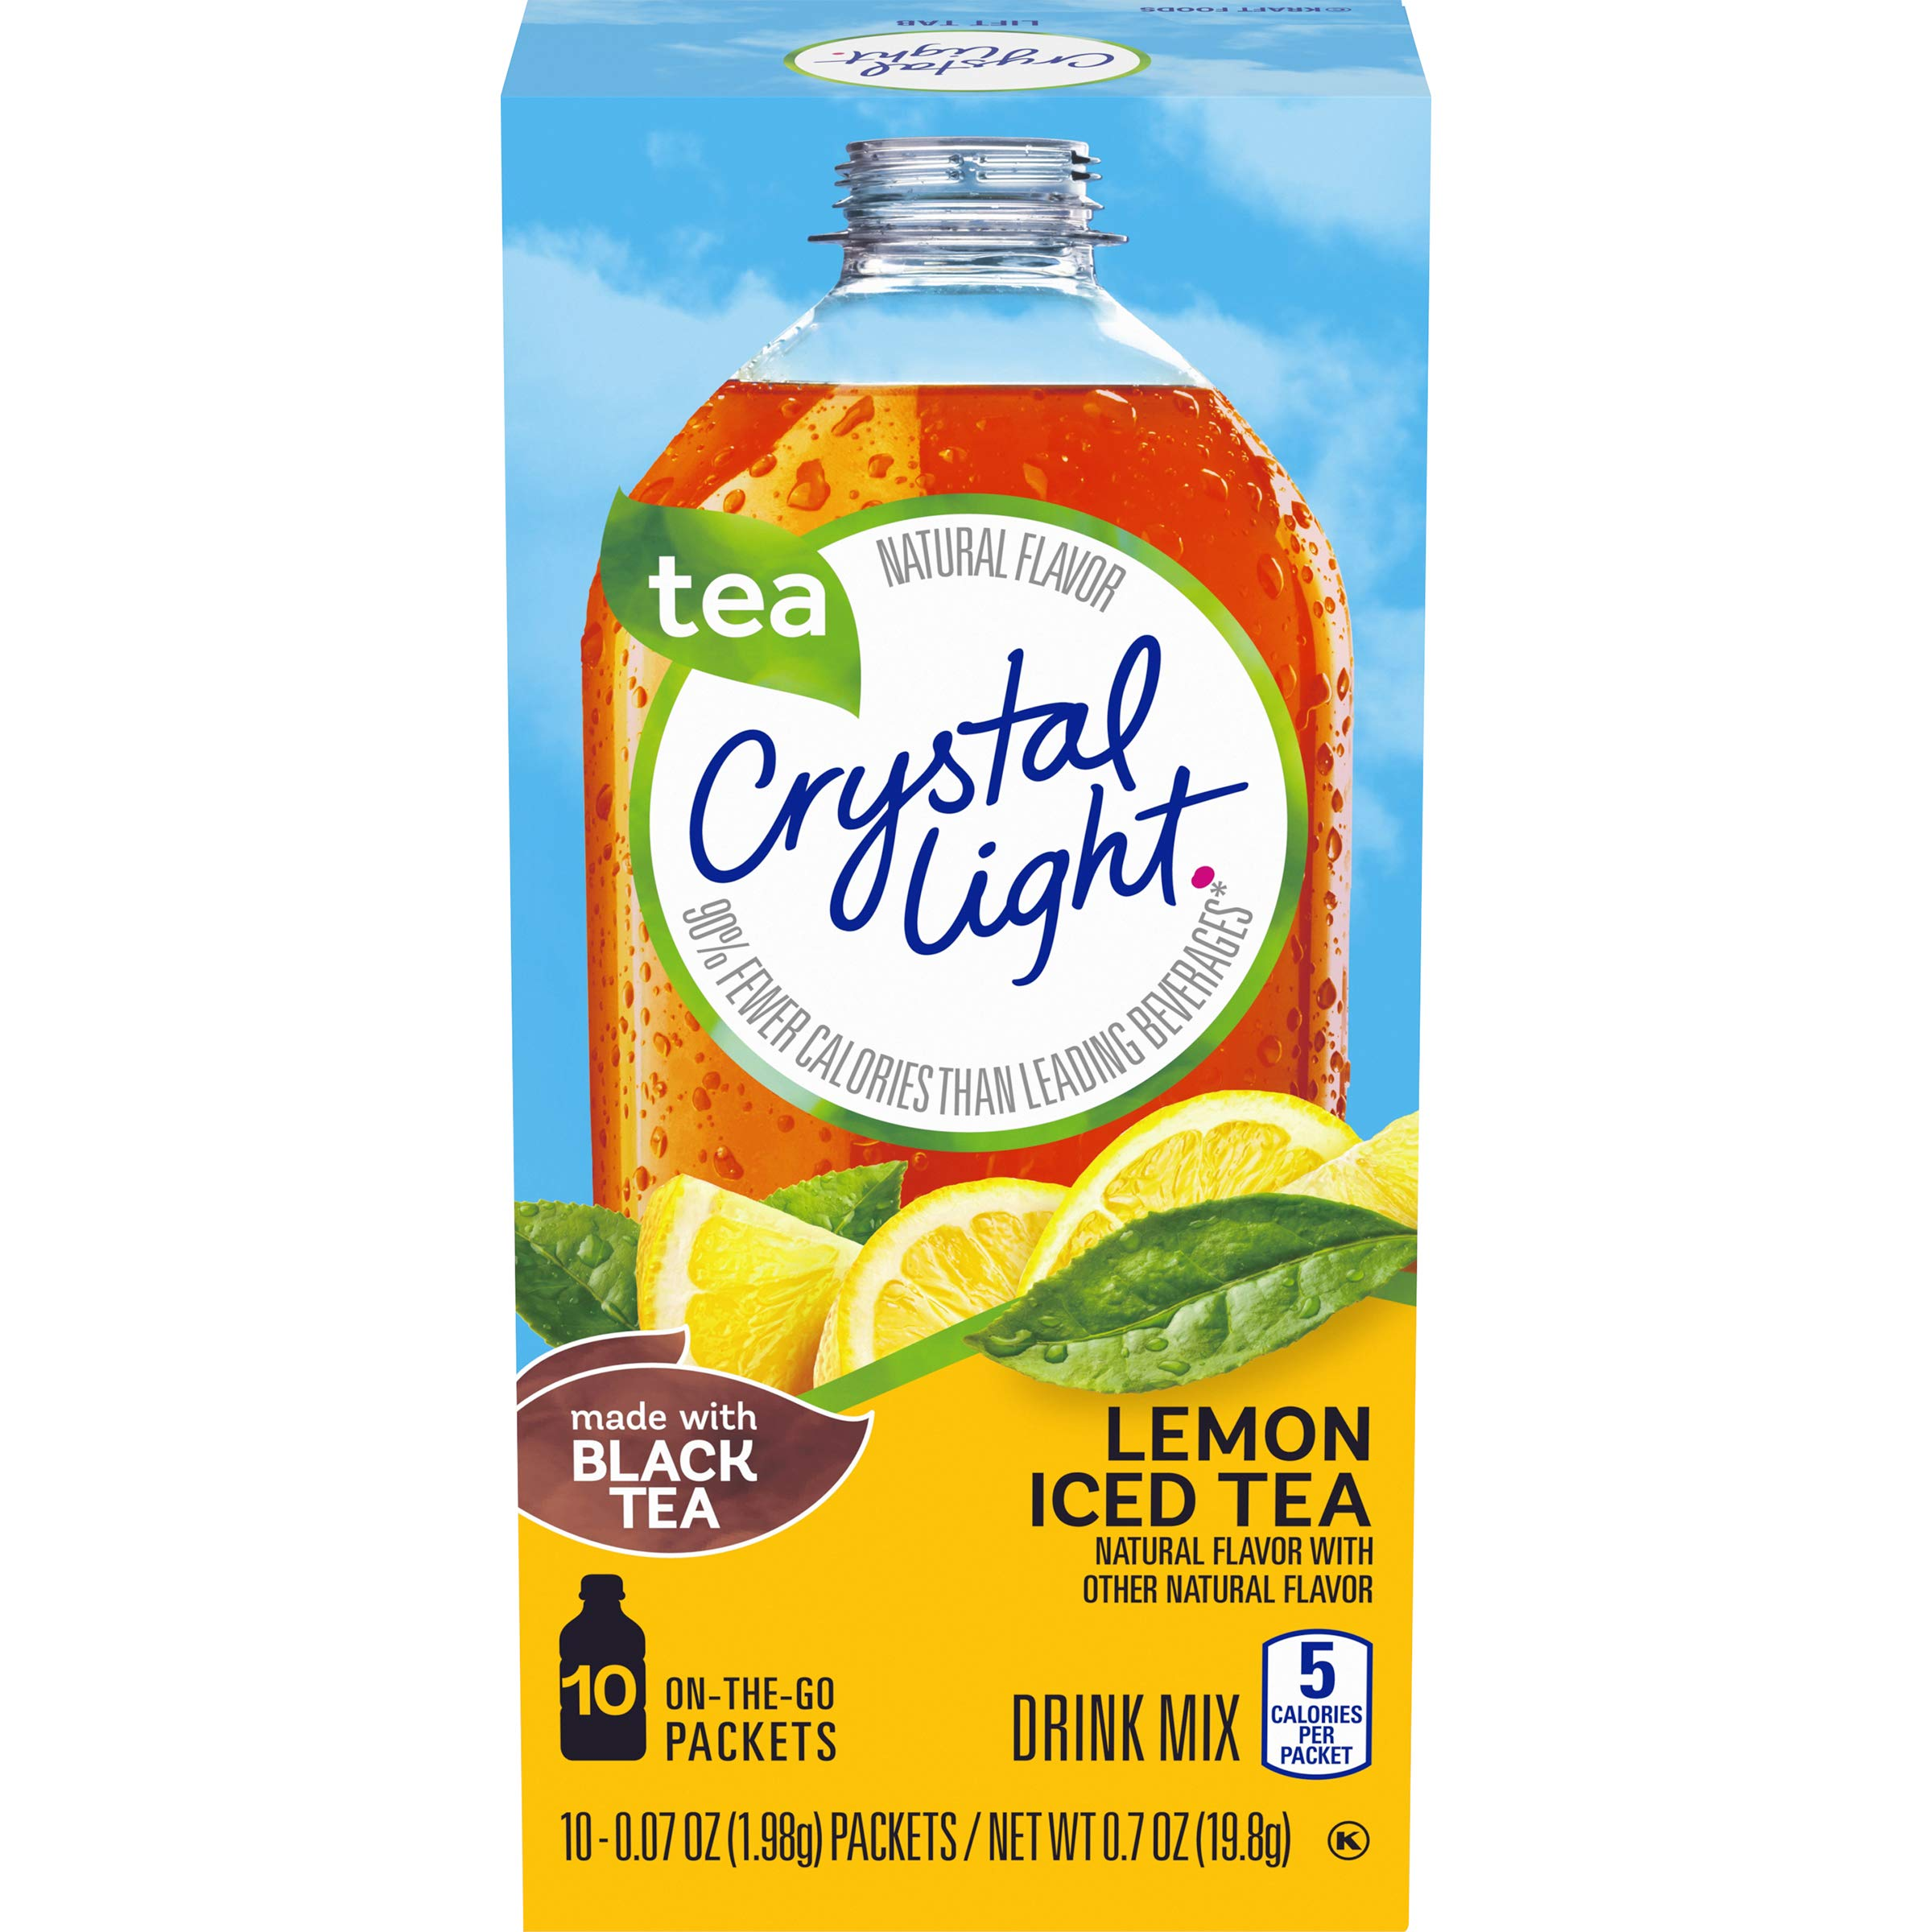 Crystal Light Lemon Iced Tea Drink Mix (60 Packets, 6 Boxes of 10) by Crystal Light